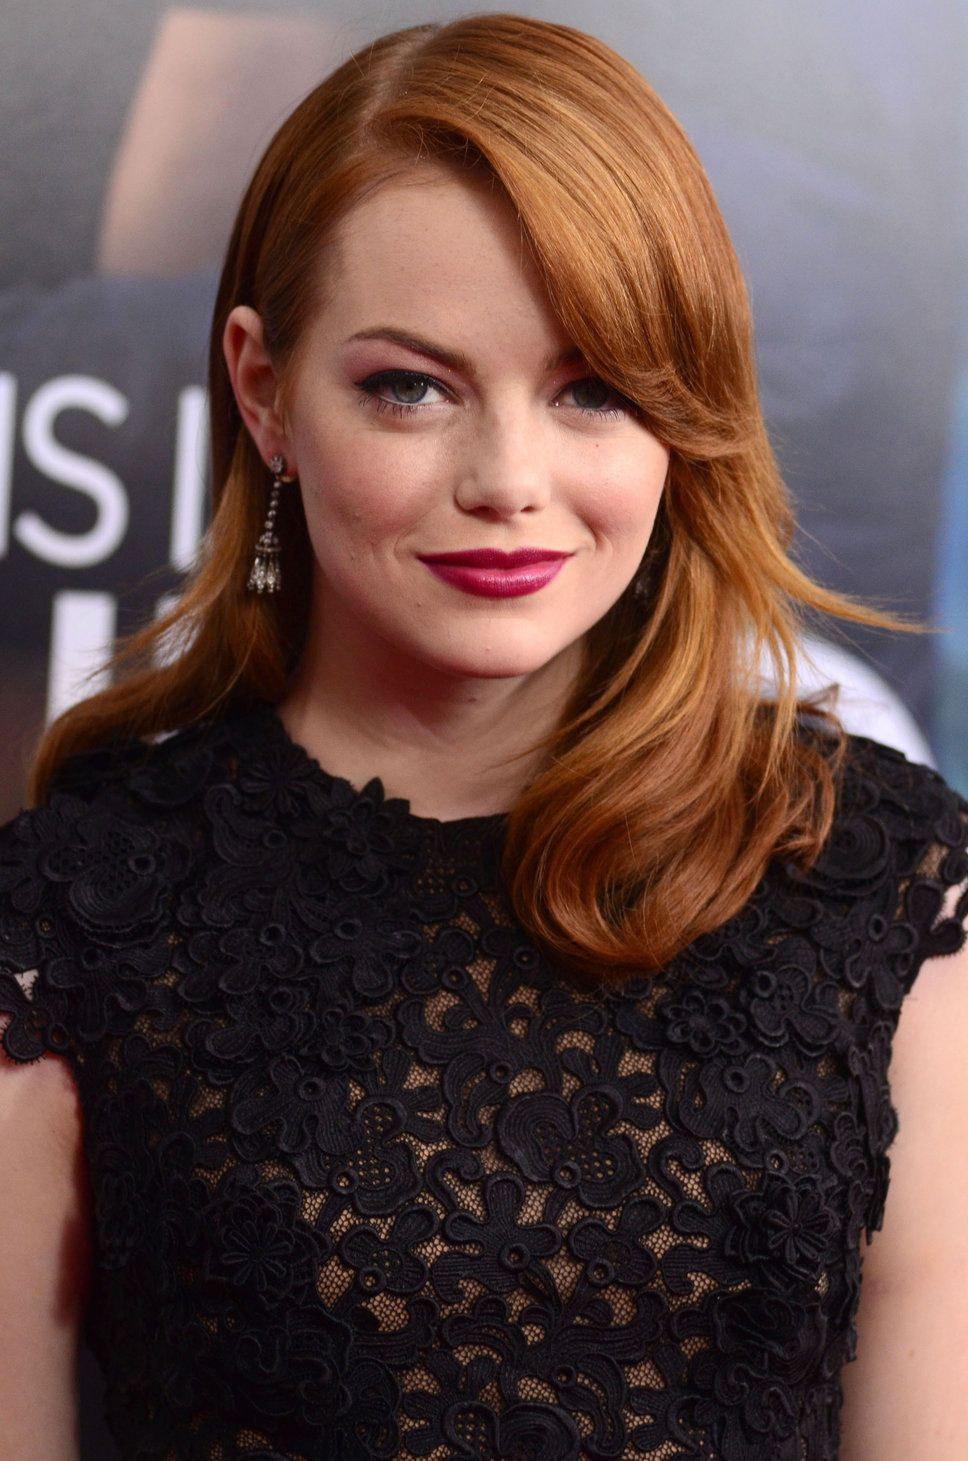 Emma Stone Red Old Hollywoods Hair Style Hot Pink Lips Diamond